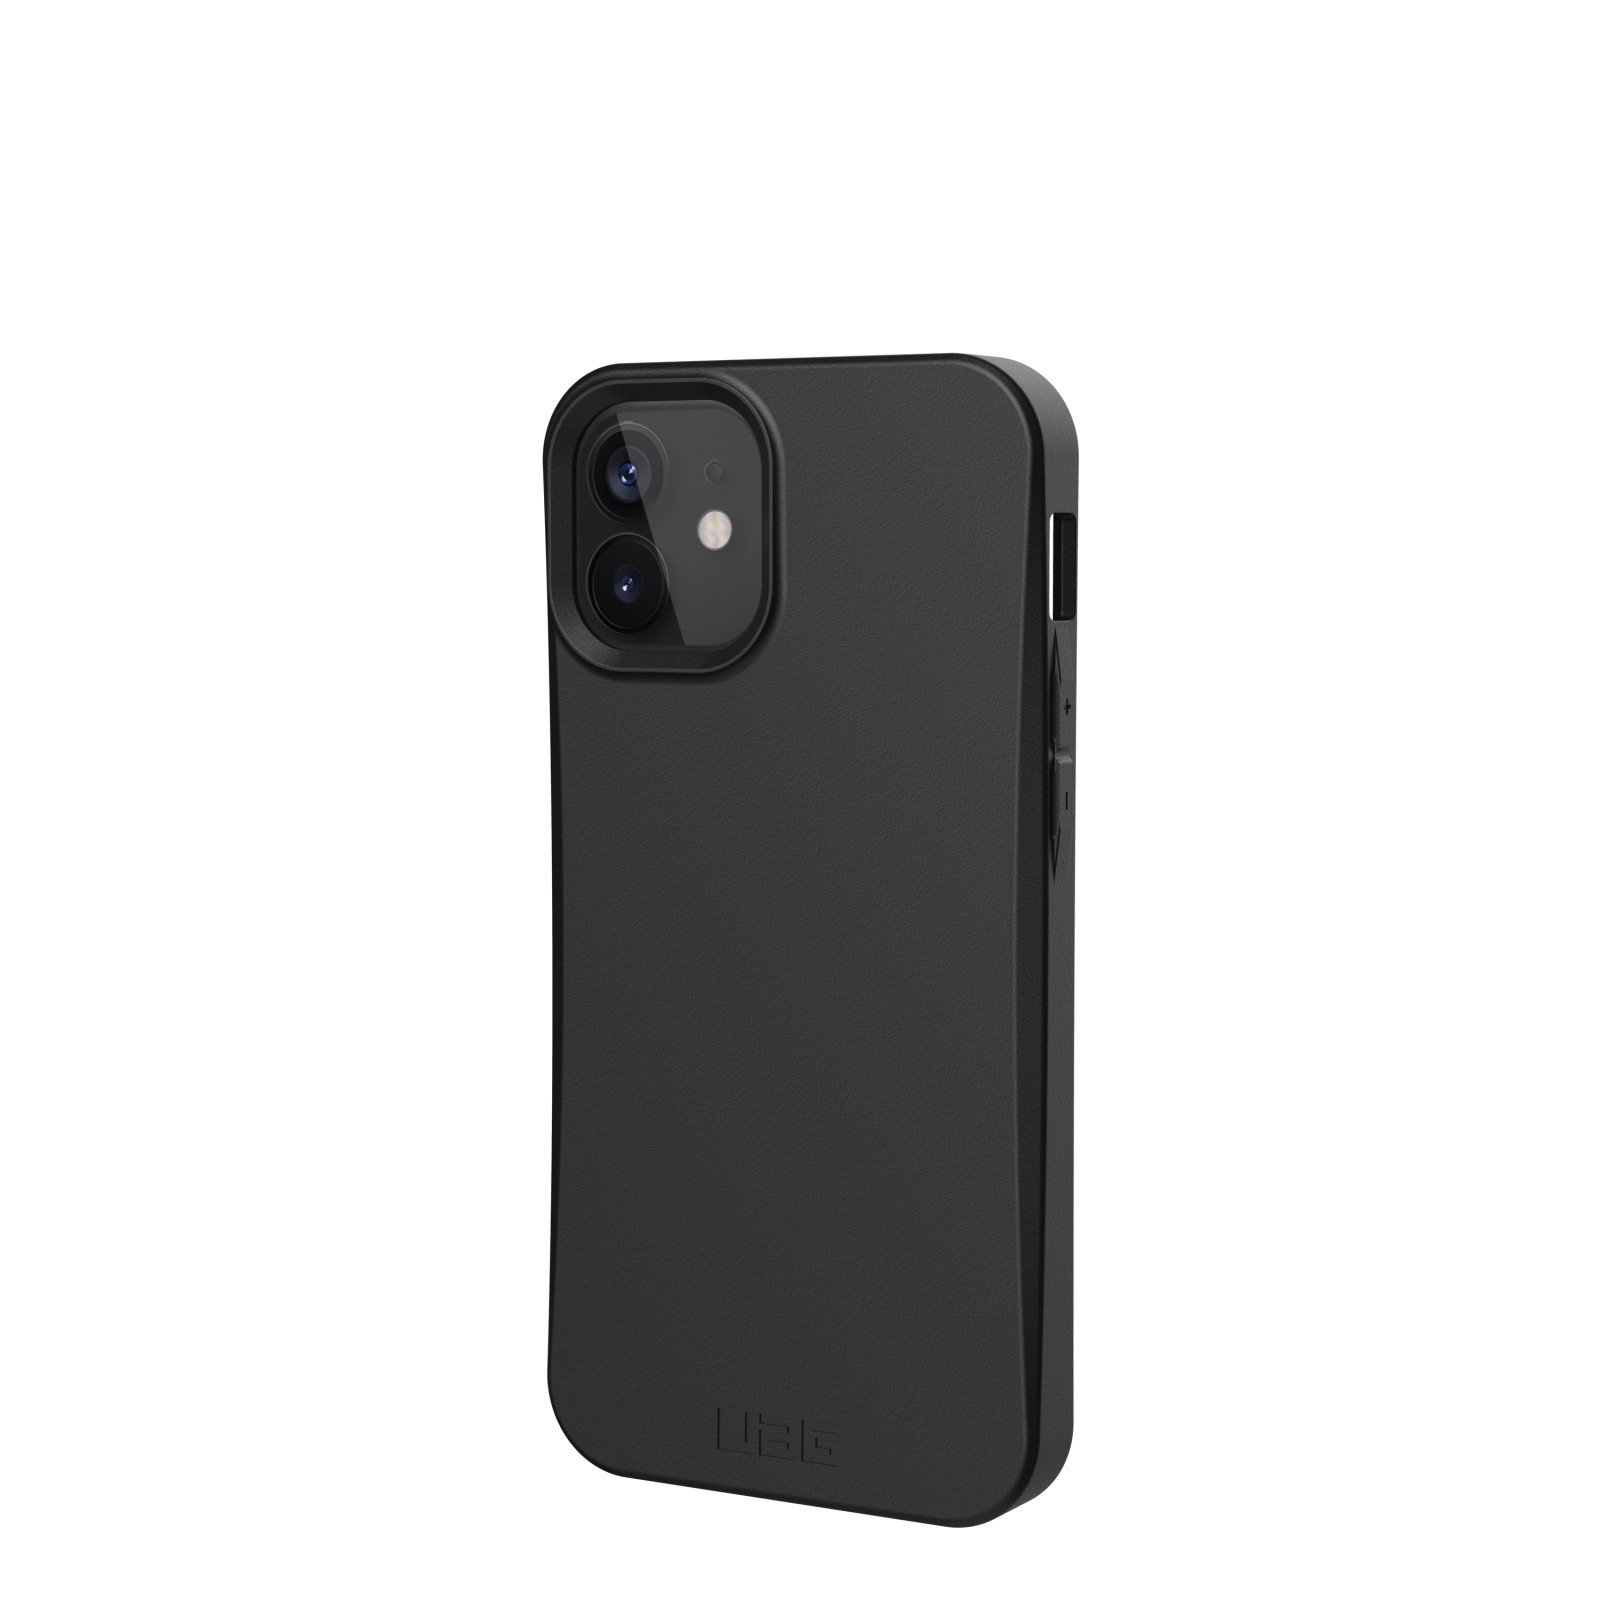 ỐP LƯNG UAG OUTBACK CHO IPHONE 12 MINI [5.4-INCH] - Black